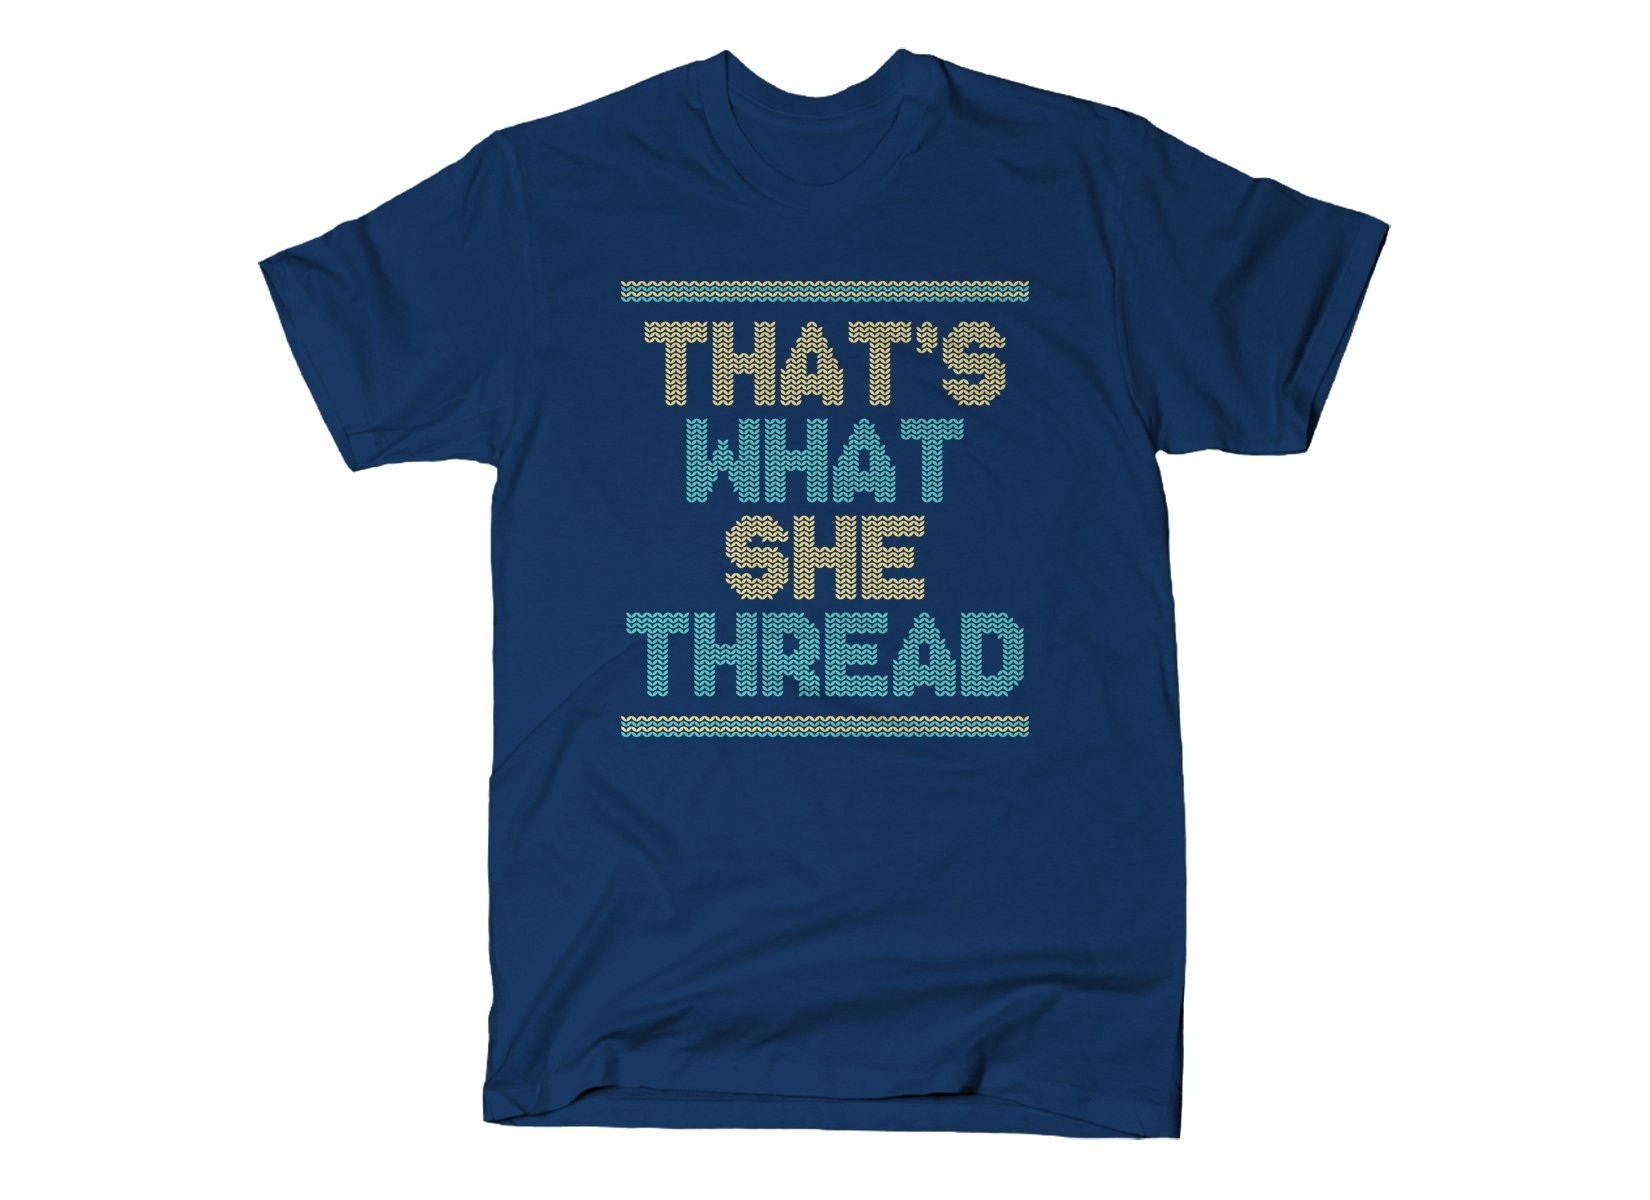 That's What She Thread on Mens T-Shirt